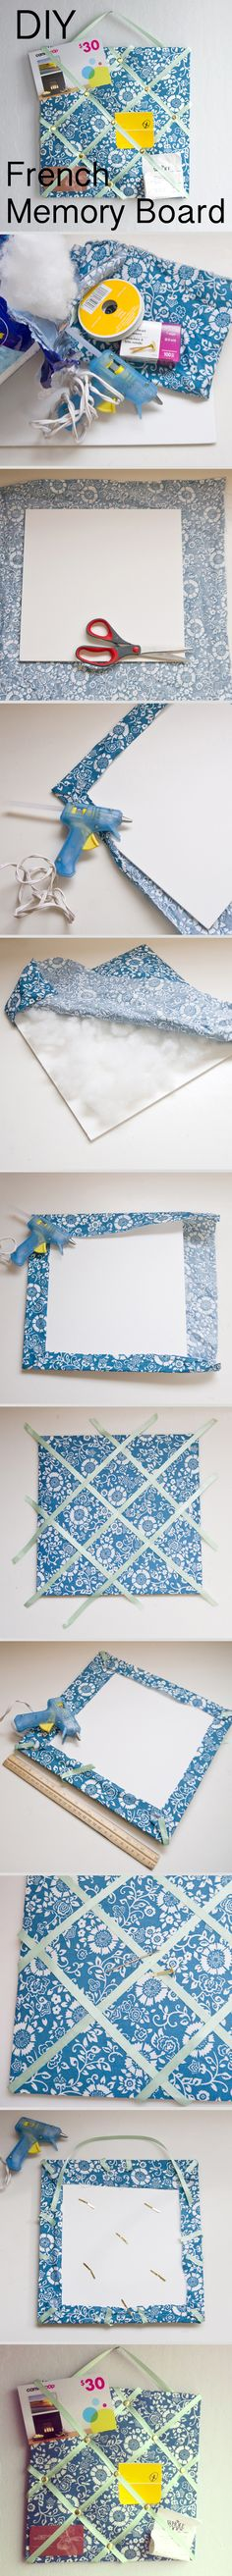 How to make a memory board.